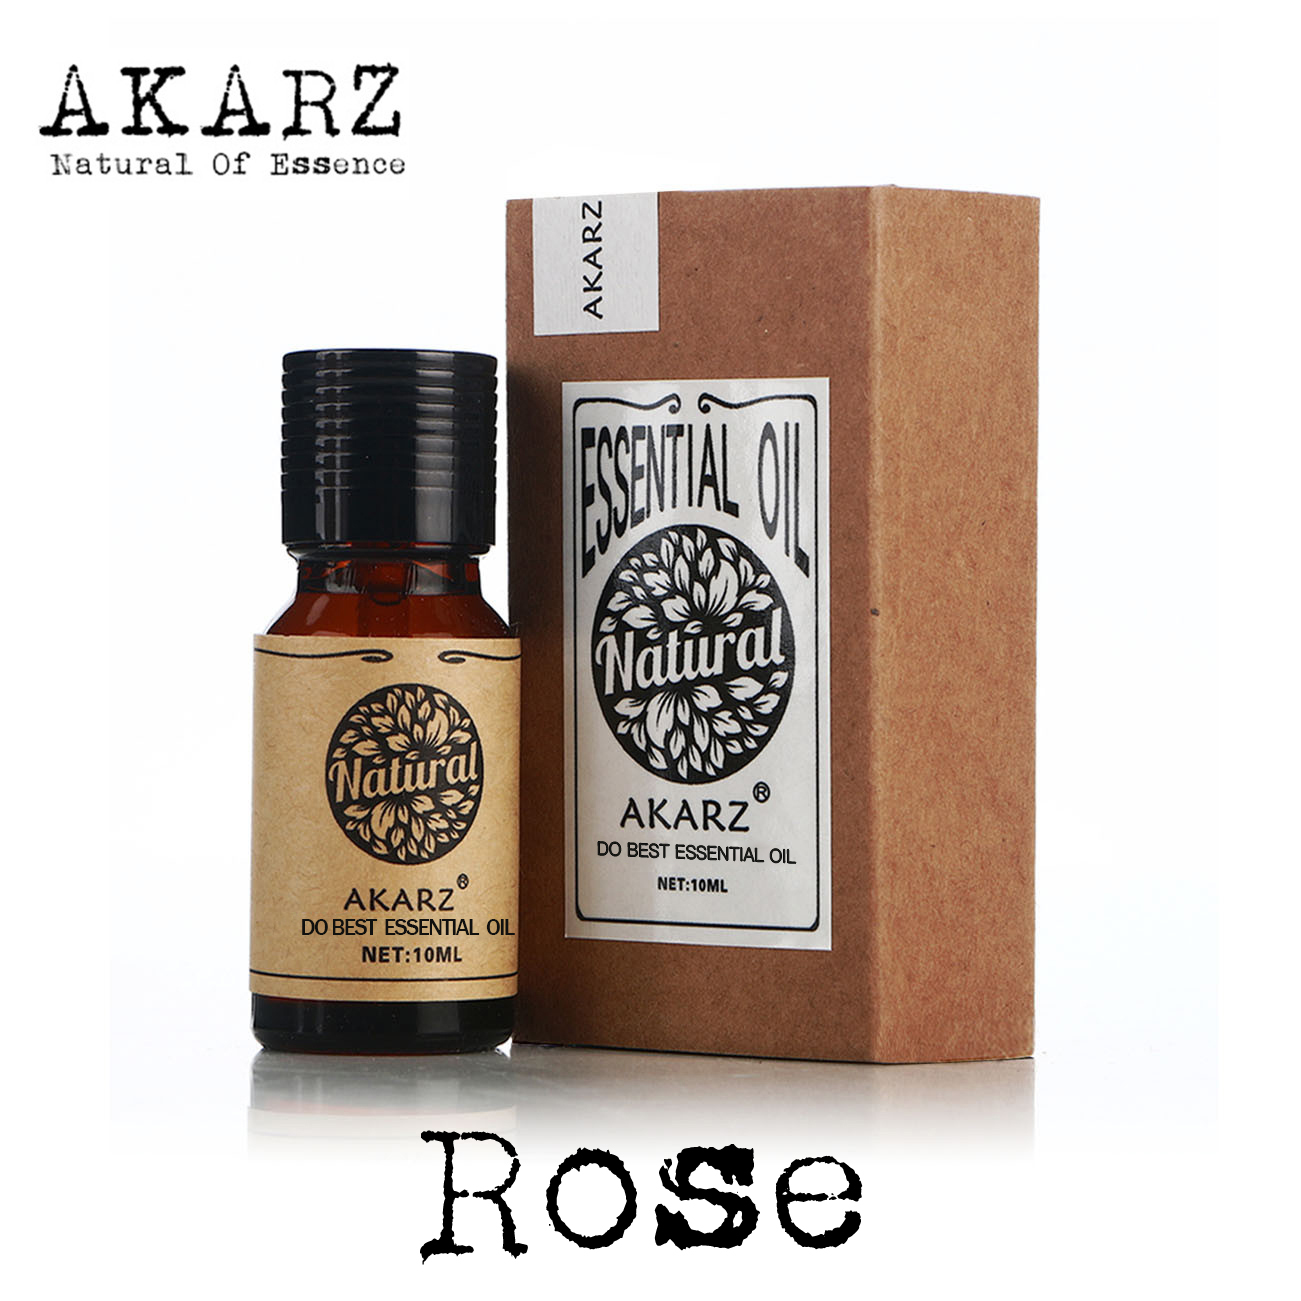 Rose essential oil AKARZ Famous brand natural Oiliness Cosmetics Candle Soap Scents Making DIY odorant raw material Rose oilRose essential oil AKARZ Famous brand natural Oiliness Cosmetics Candle Soap Scents Making DIY odorant raw material Rose oil